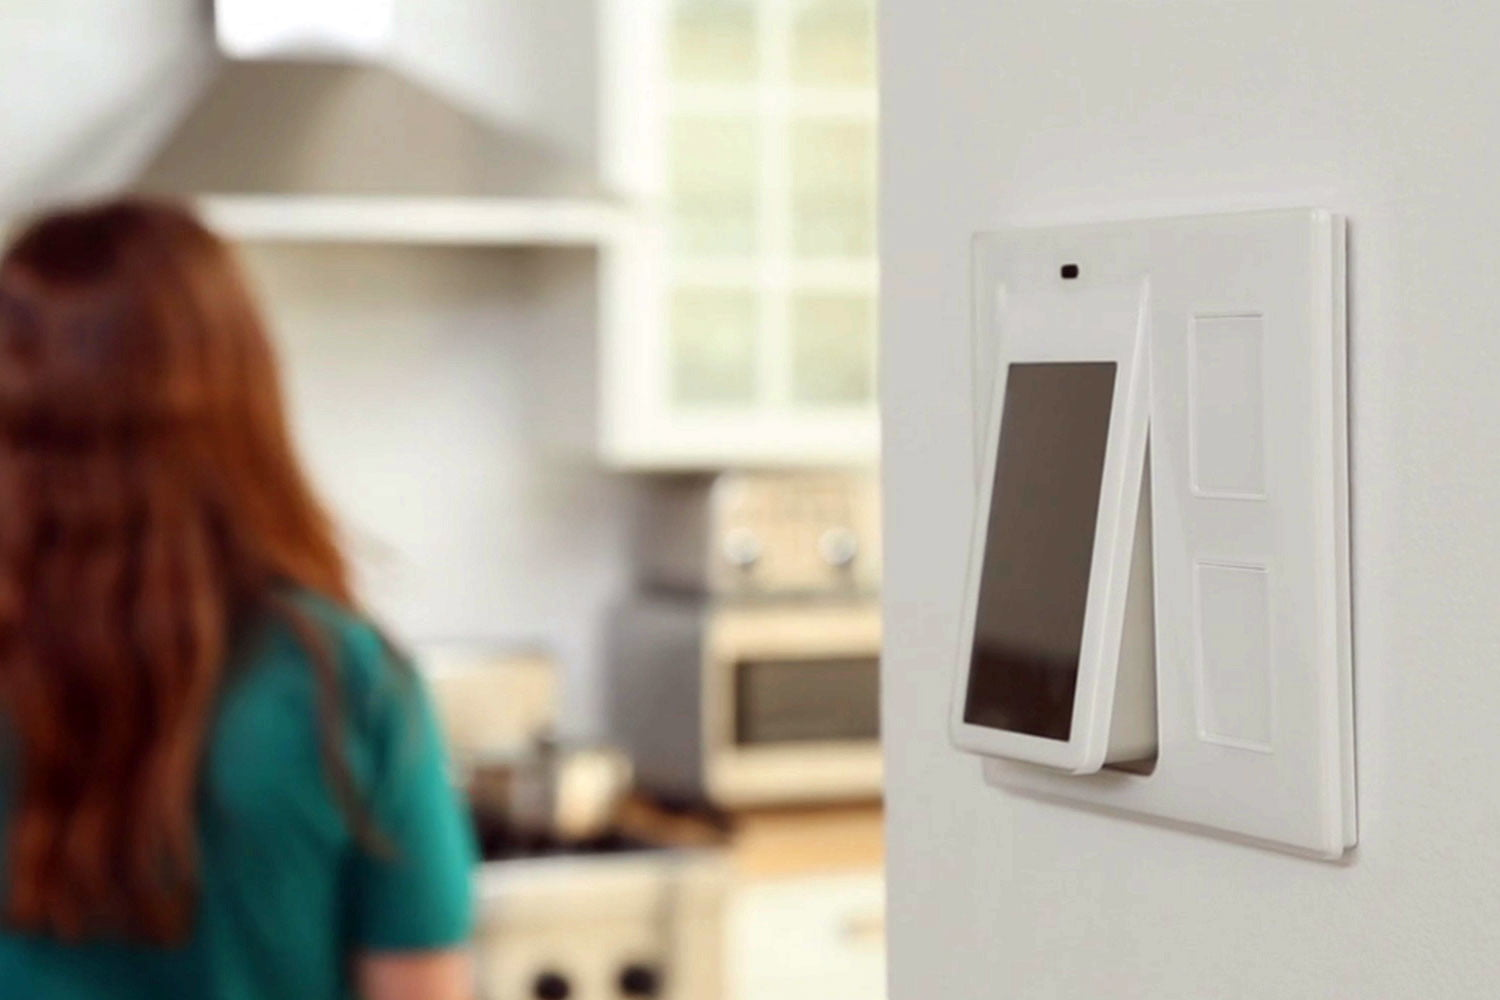 winks relay light switch works with uber fitbit and ifttt wink touchscreen controller 006